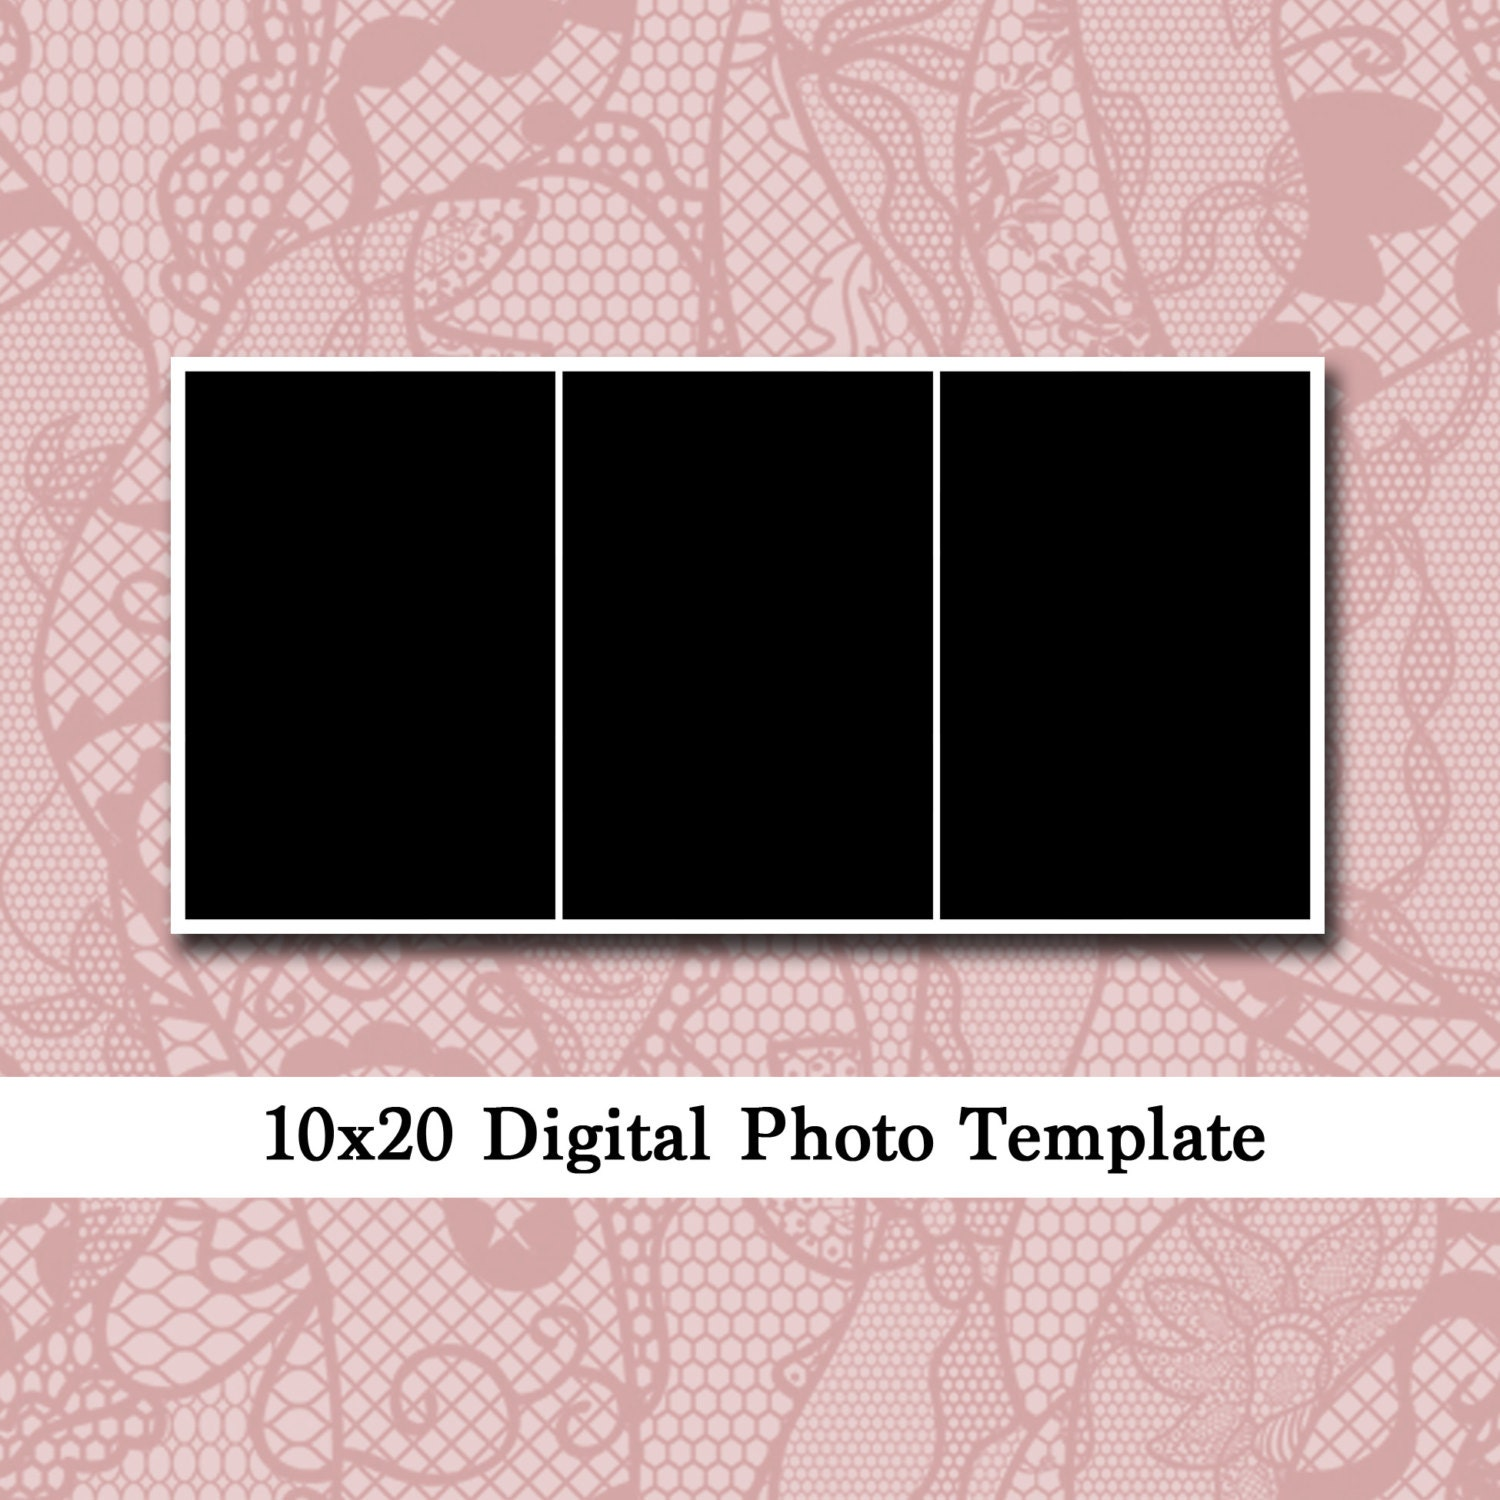 photo collage number templates - 10x20 photo template photo collage photography digital